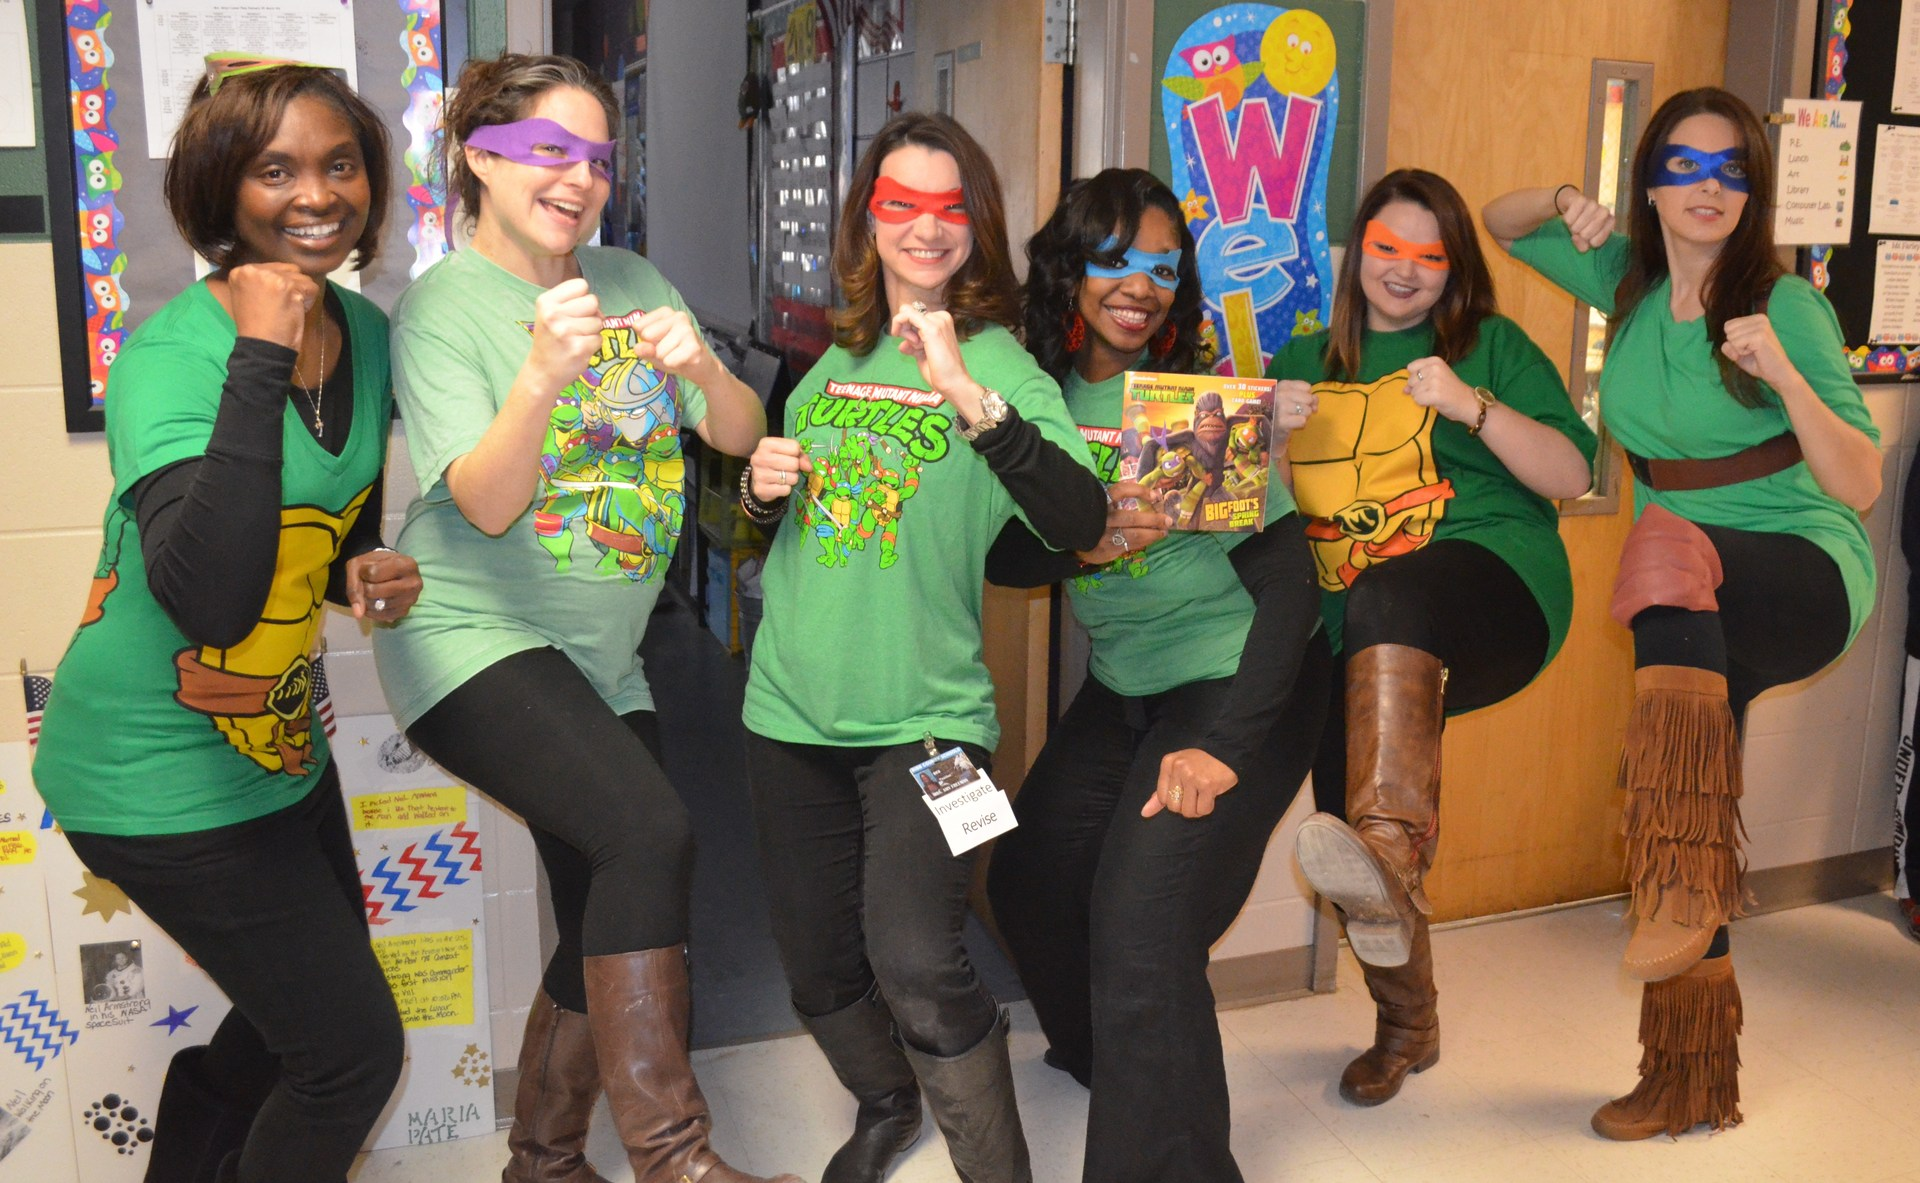 Second grade teachers get into the spirit of Read Across America Day by suiting up as Ninja Turtles.